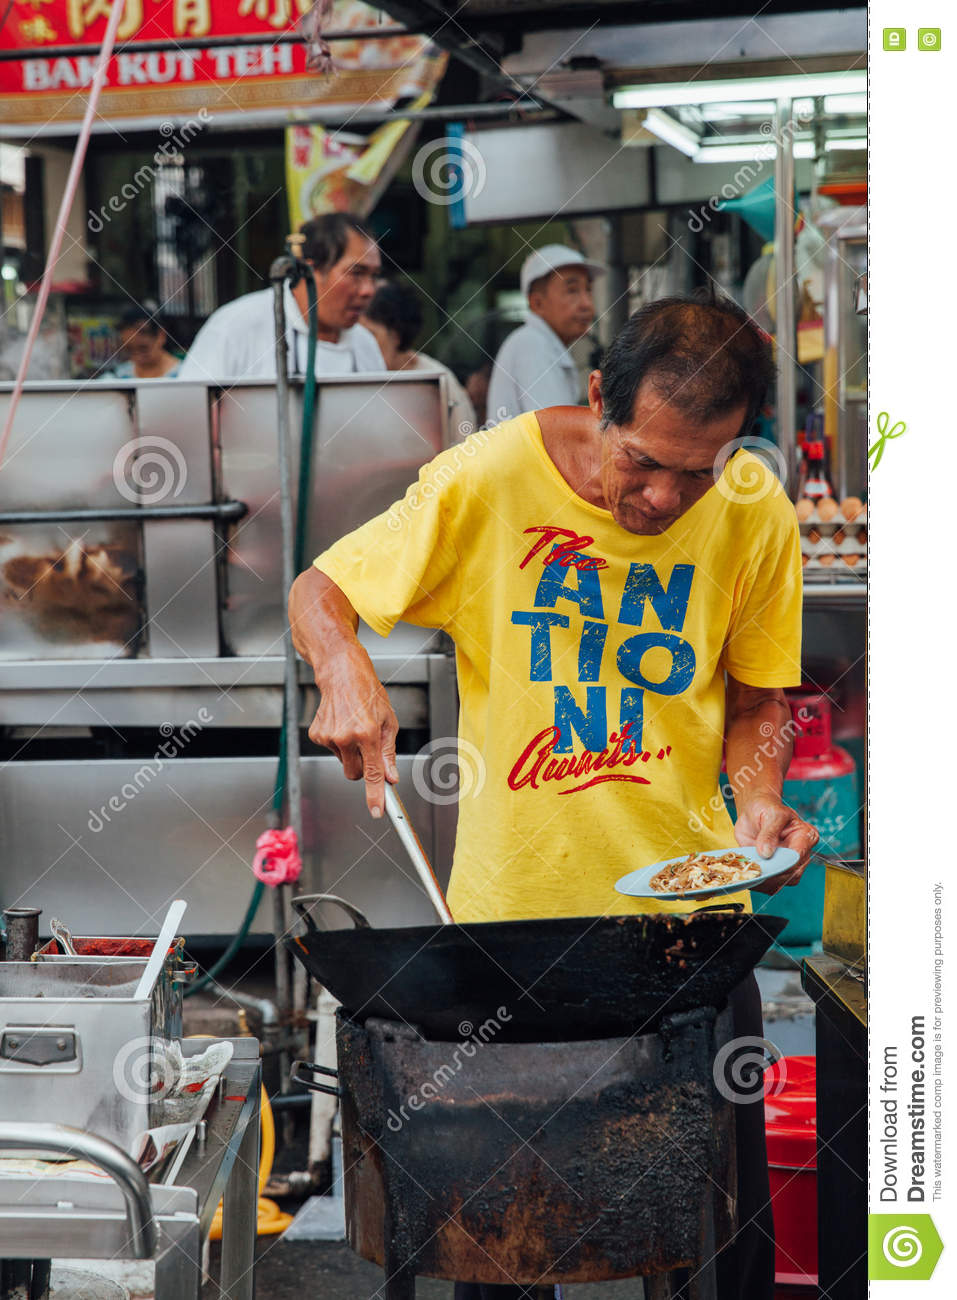 George Town, Malaysia - March 22, 2016: Senior man cooks kway teow noodles  in asian wok at the Kimberly Street Food Night Market on March 22, 2016 in  George ...